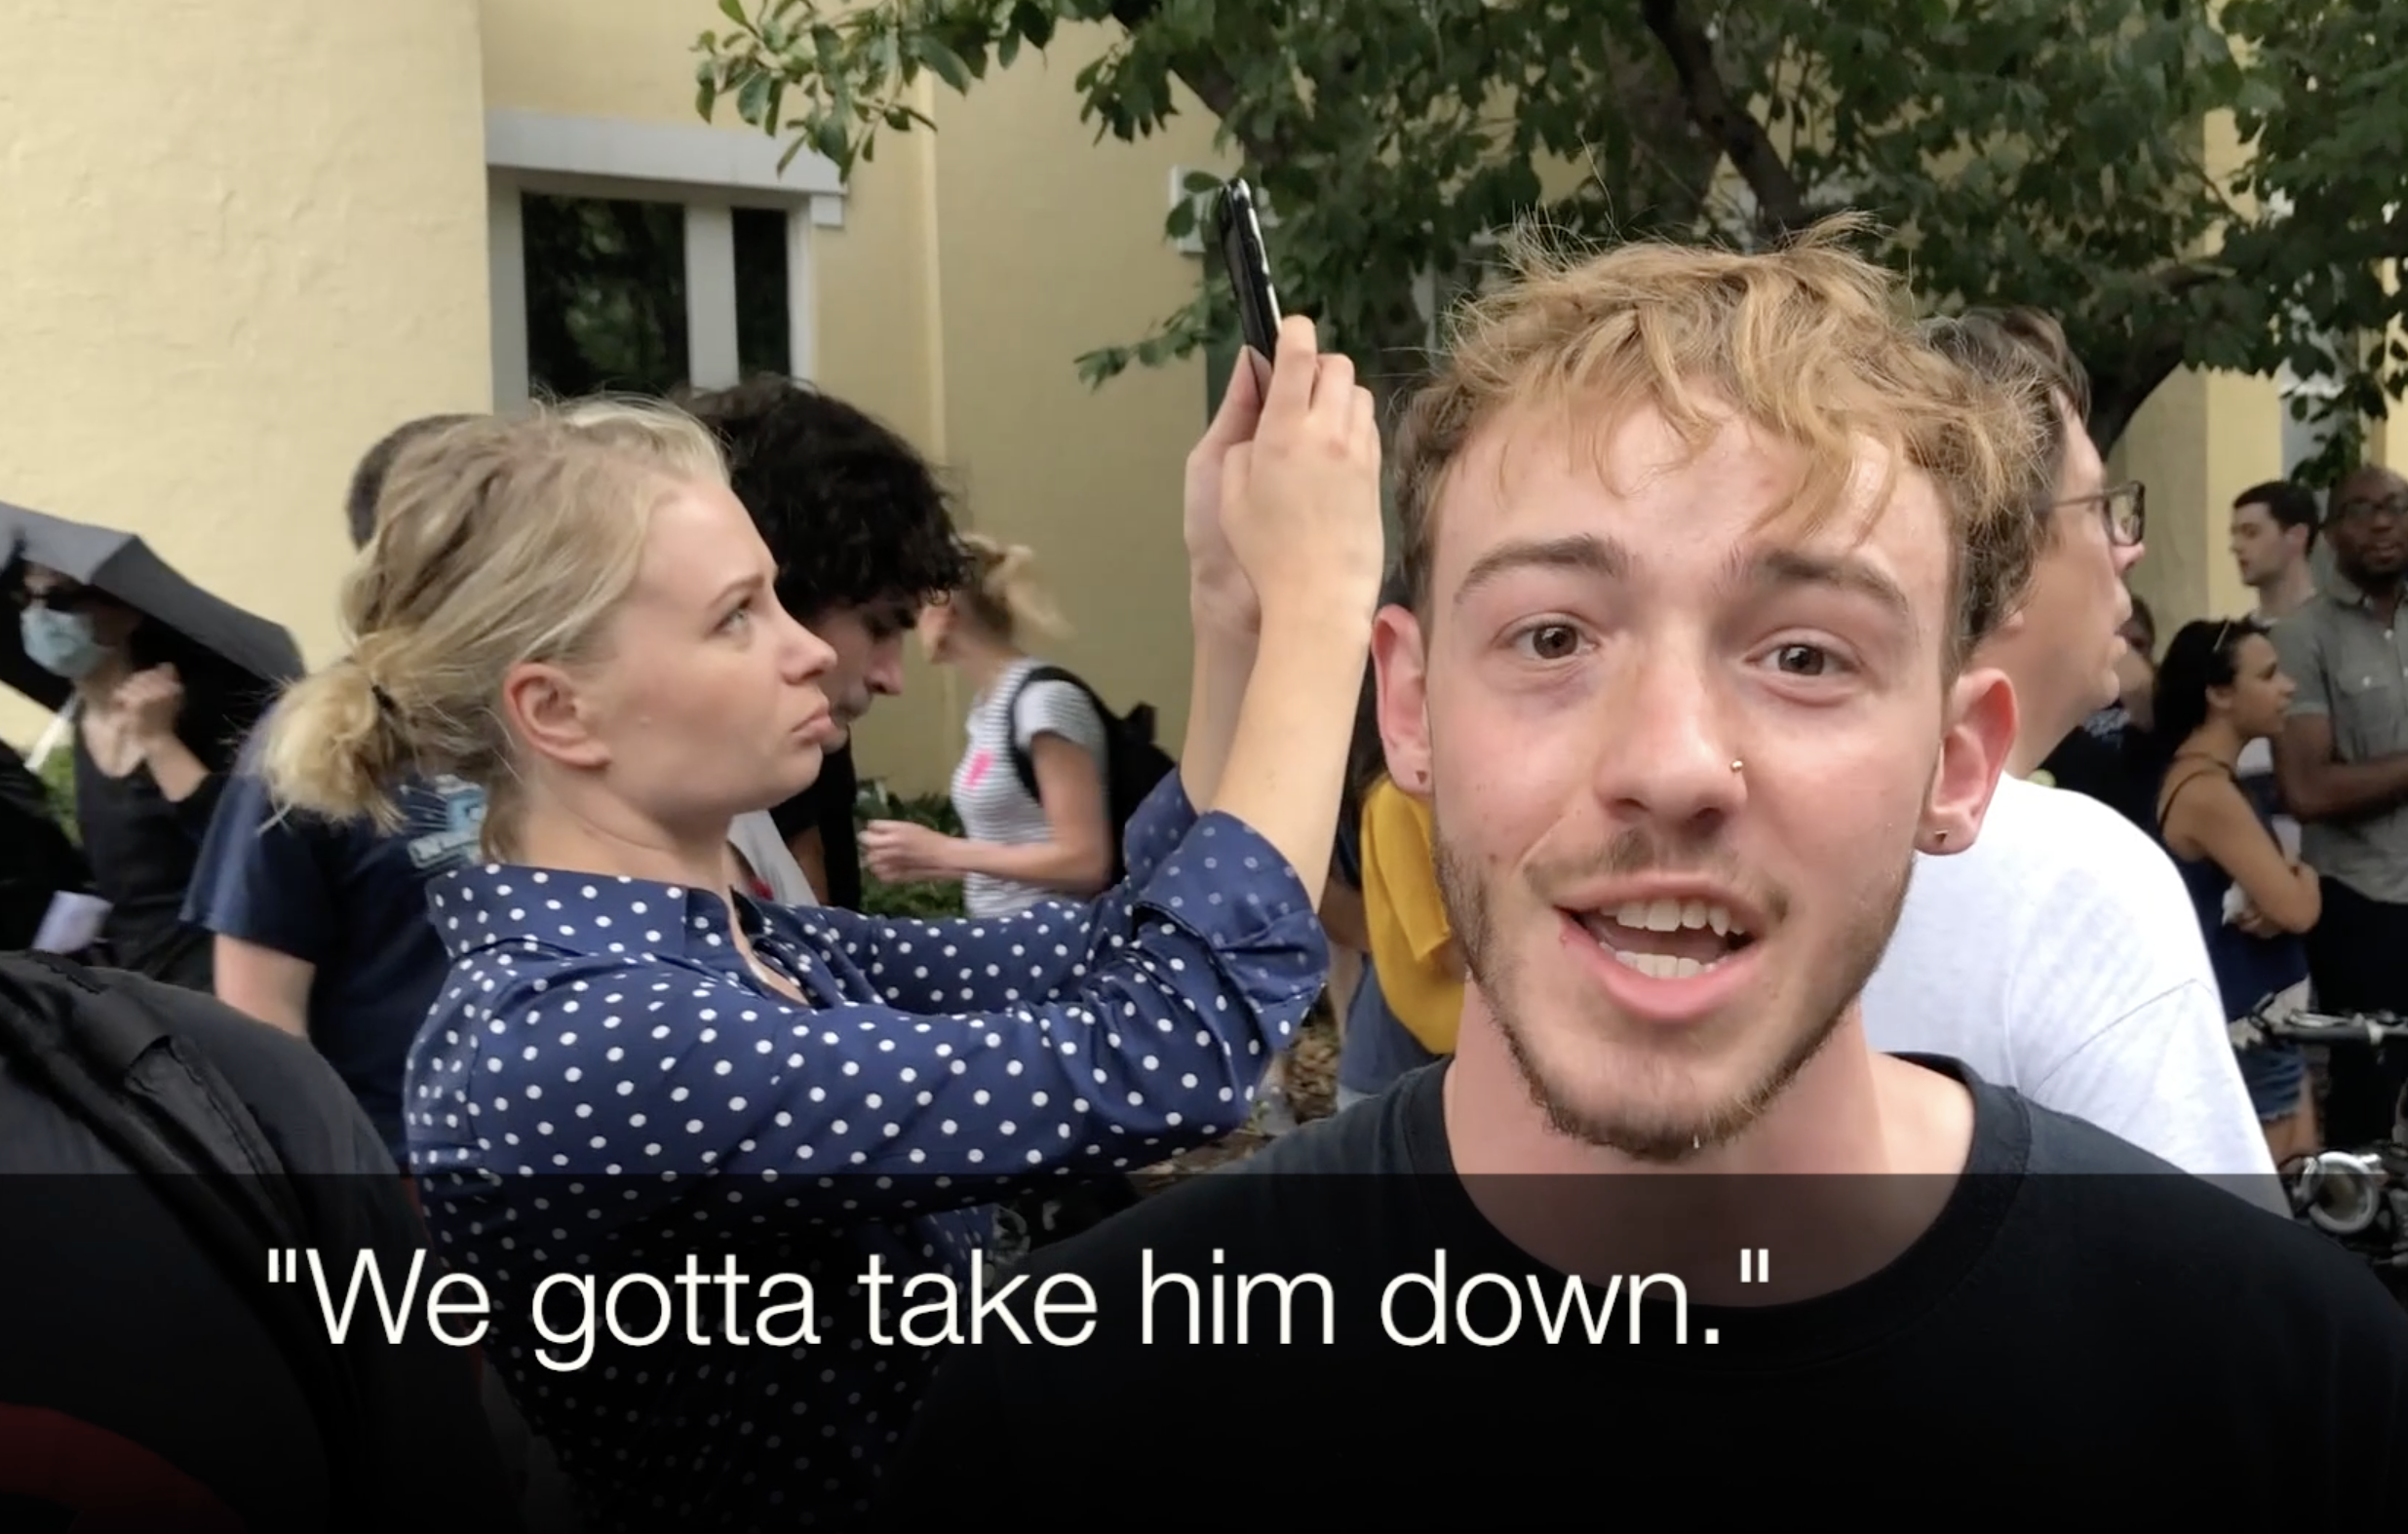 I Asked Leftists Protesters What They Would Do If They Met Trump – Their Answers Horrified Me